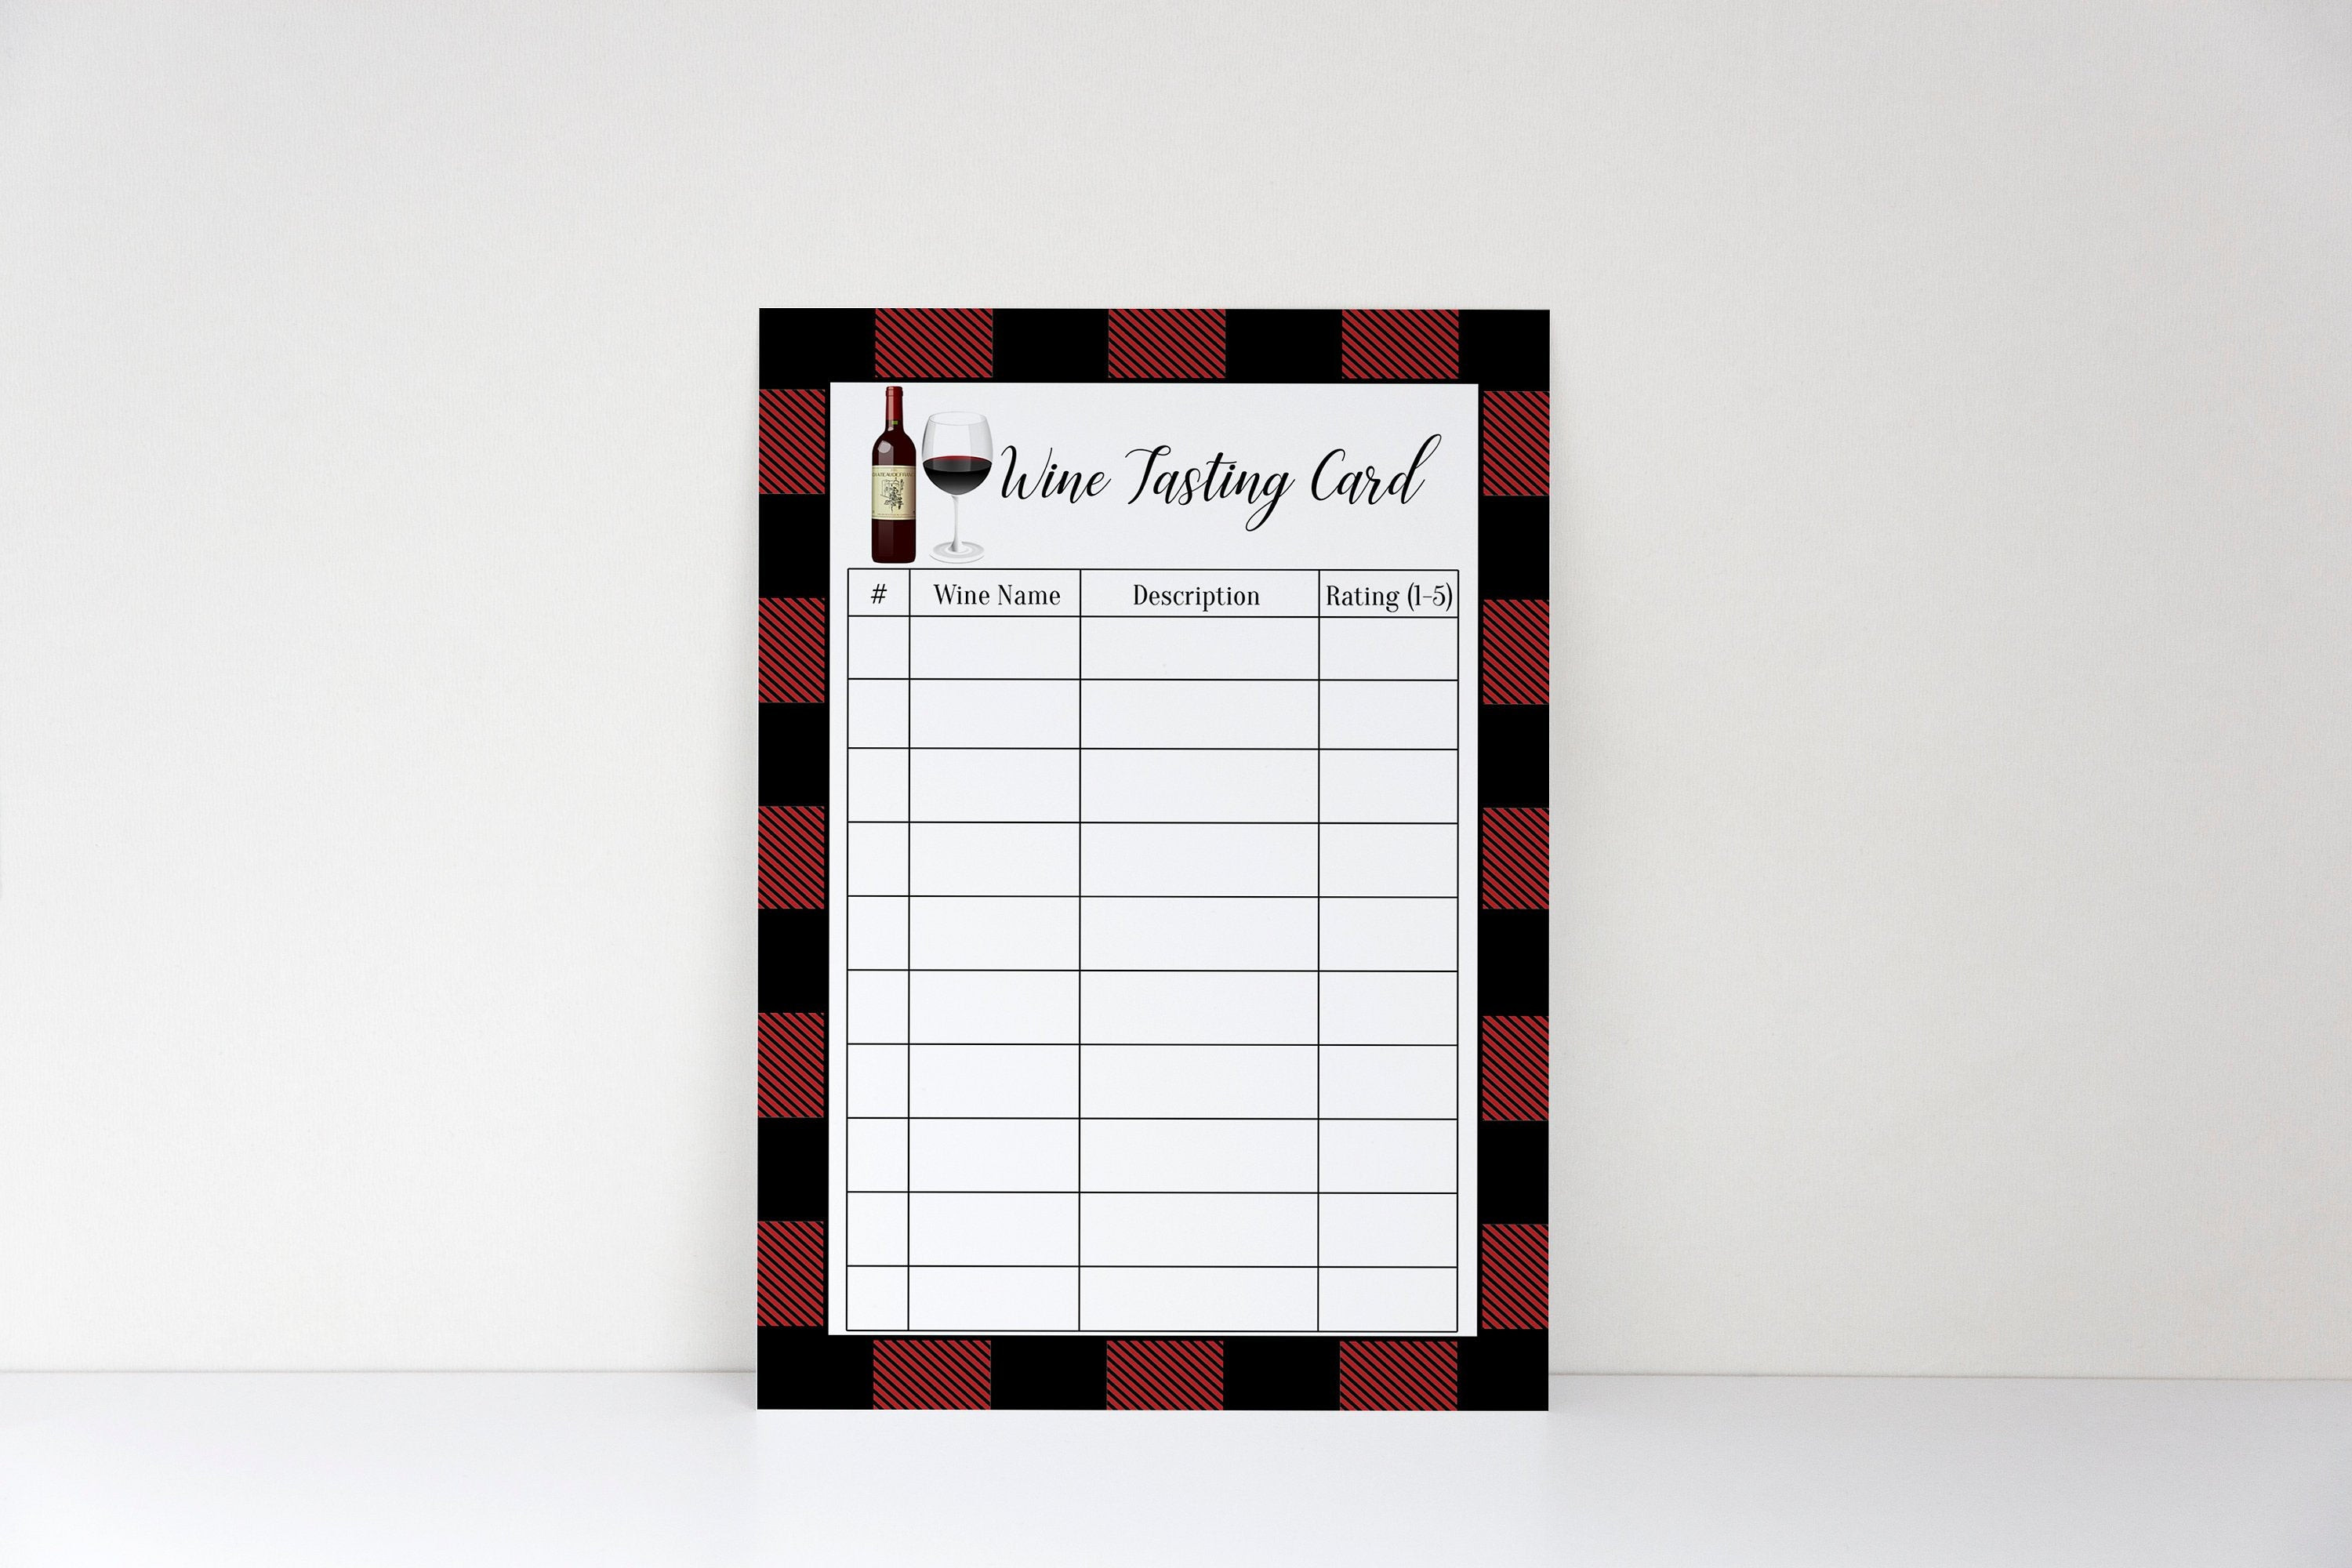 Wine Tasting Score Sheets Simple Buffalo Plaid Wine Tasting Scorecard Wine Tasting Party Wine Tasting Scorecard Score Card Score Sheet Scoring Card Wine Notes Instant